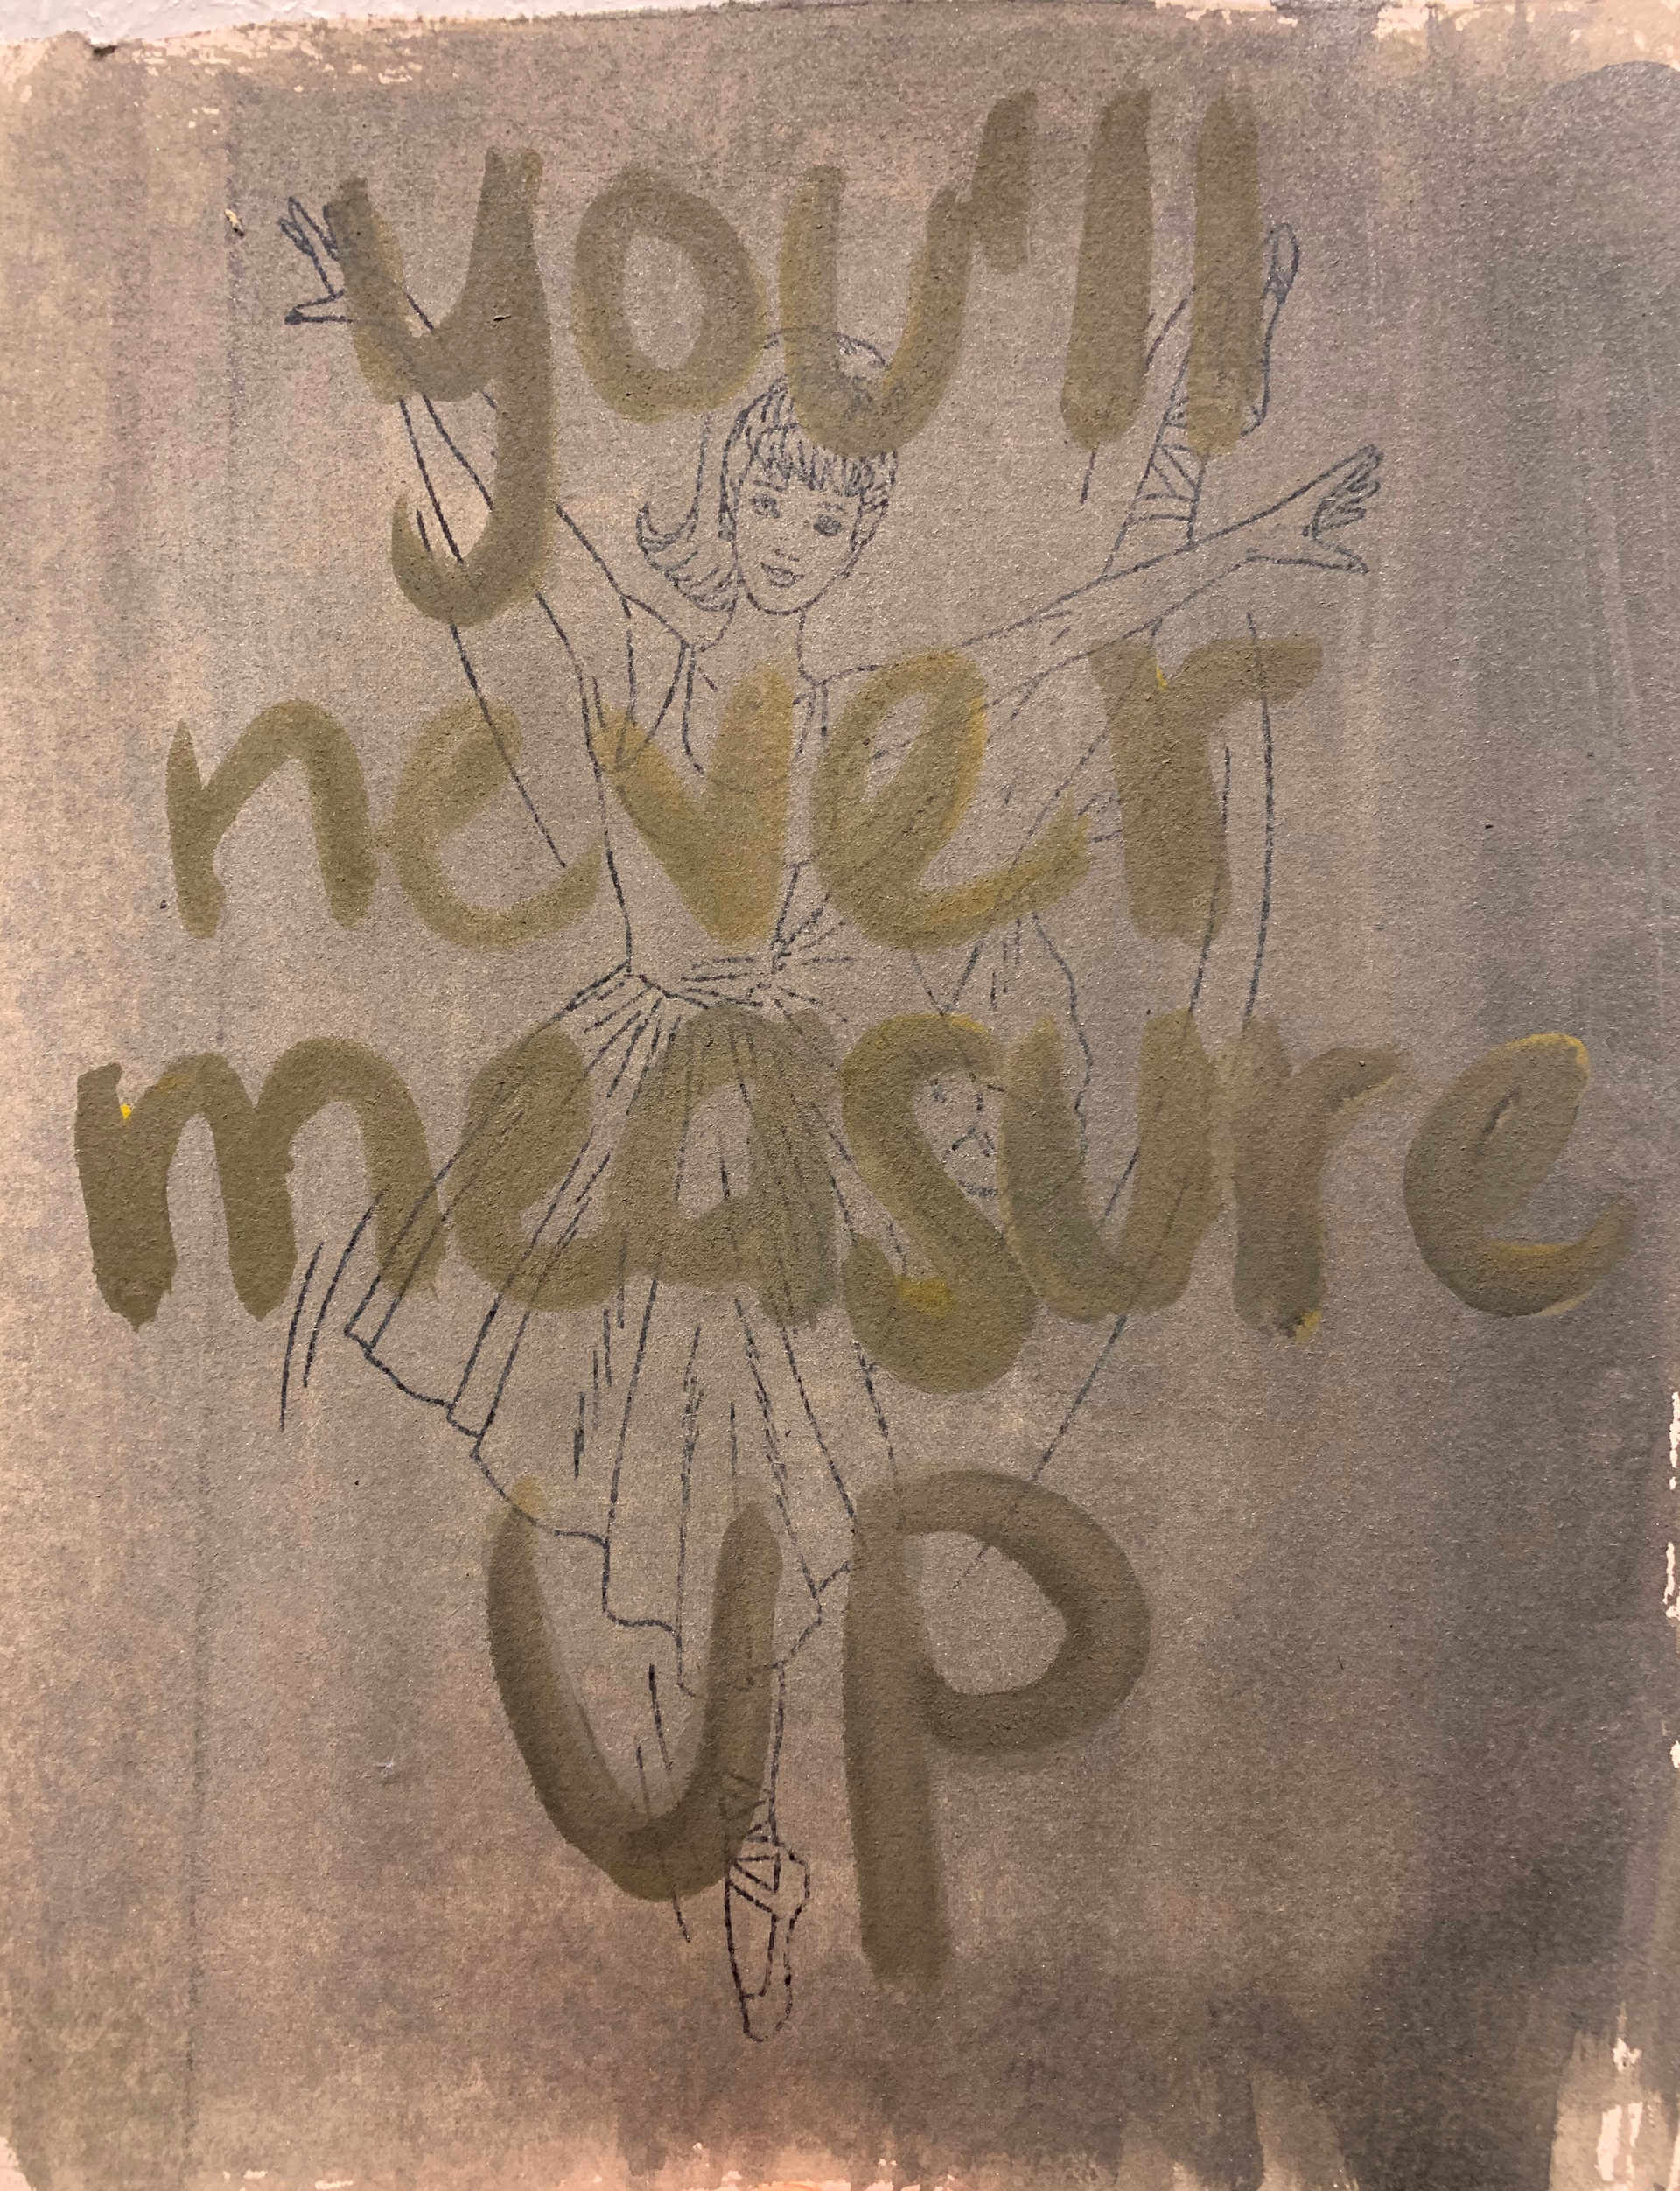 """""""you'll never measure up"""", truth for a lie series, 8"""" x 10"""", 2020"""